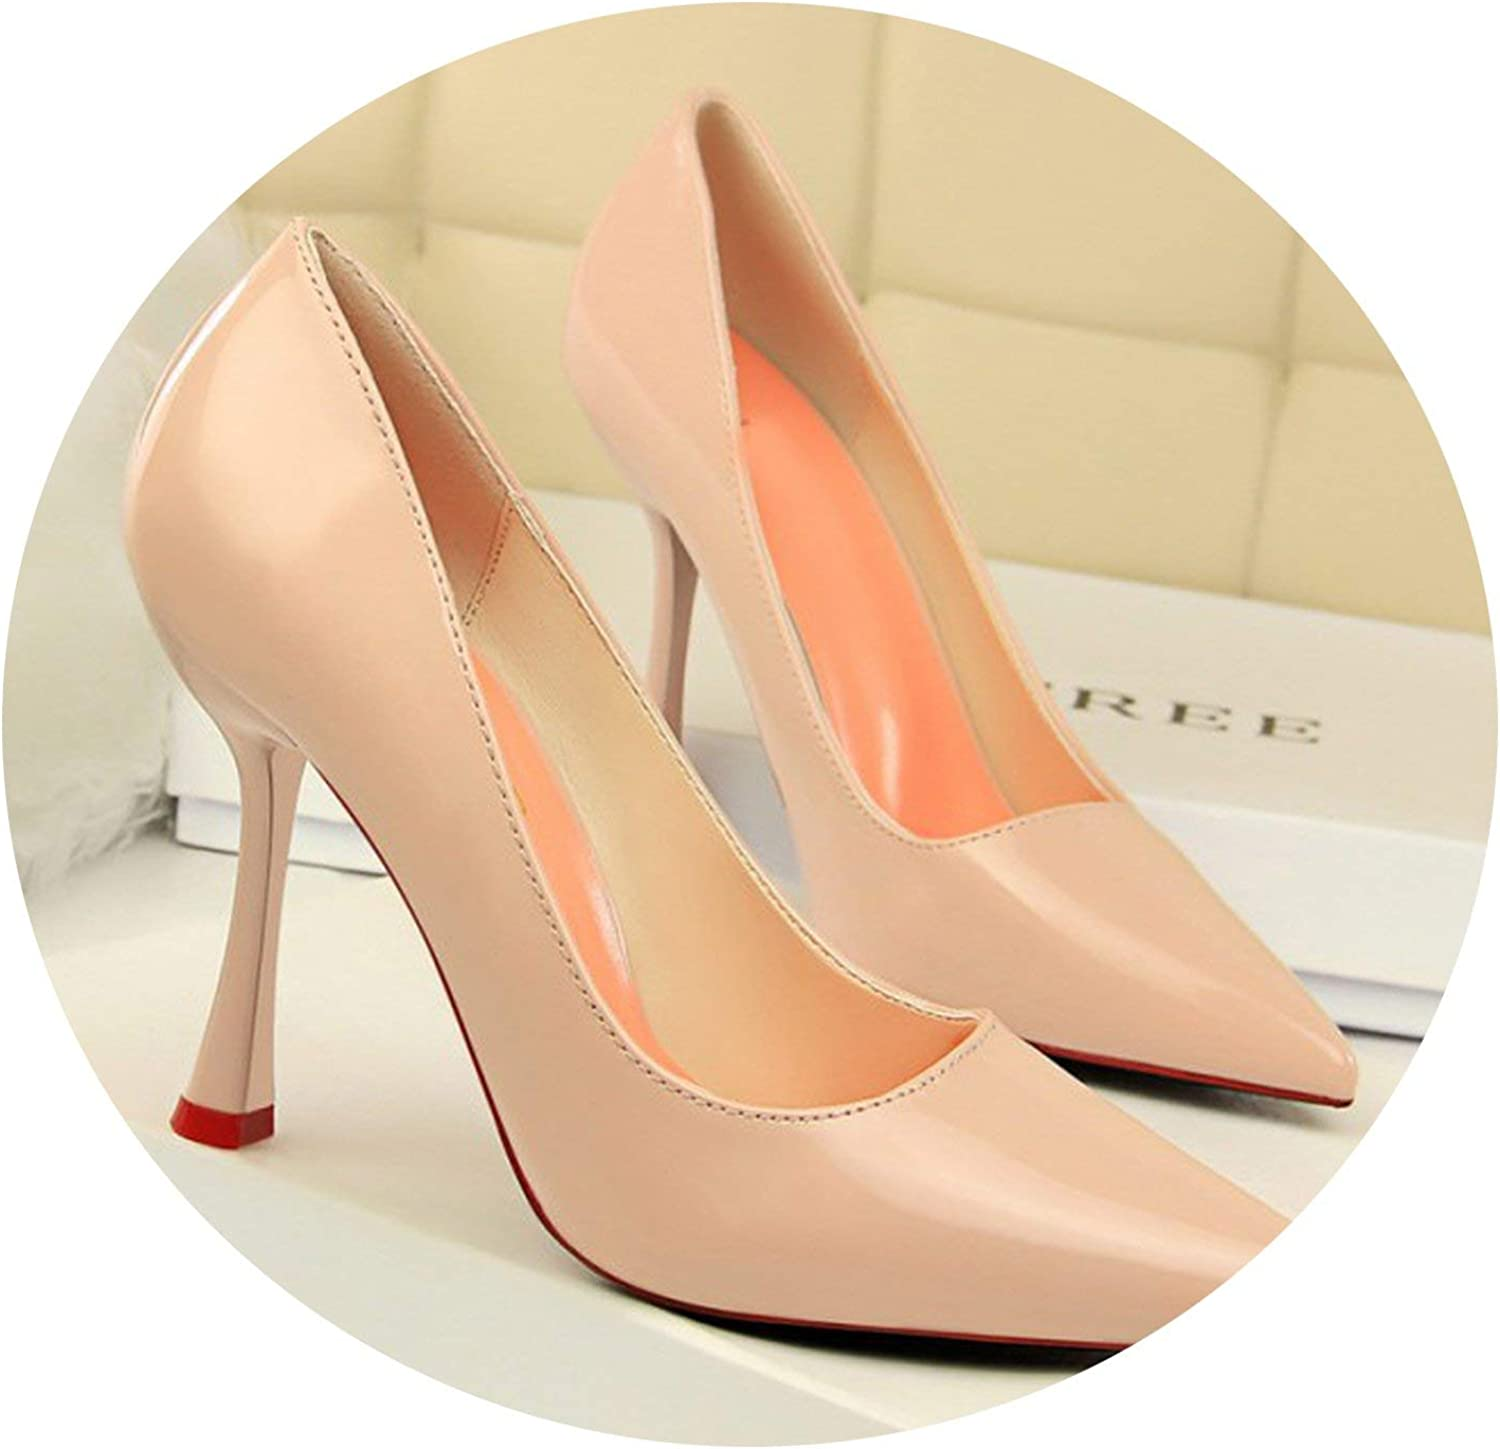 Mr Z Waroom Thin Heels Women Shallow Pumps Fashion Pointed Toe High Heels shoes Patent Leather Wedding Pumps